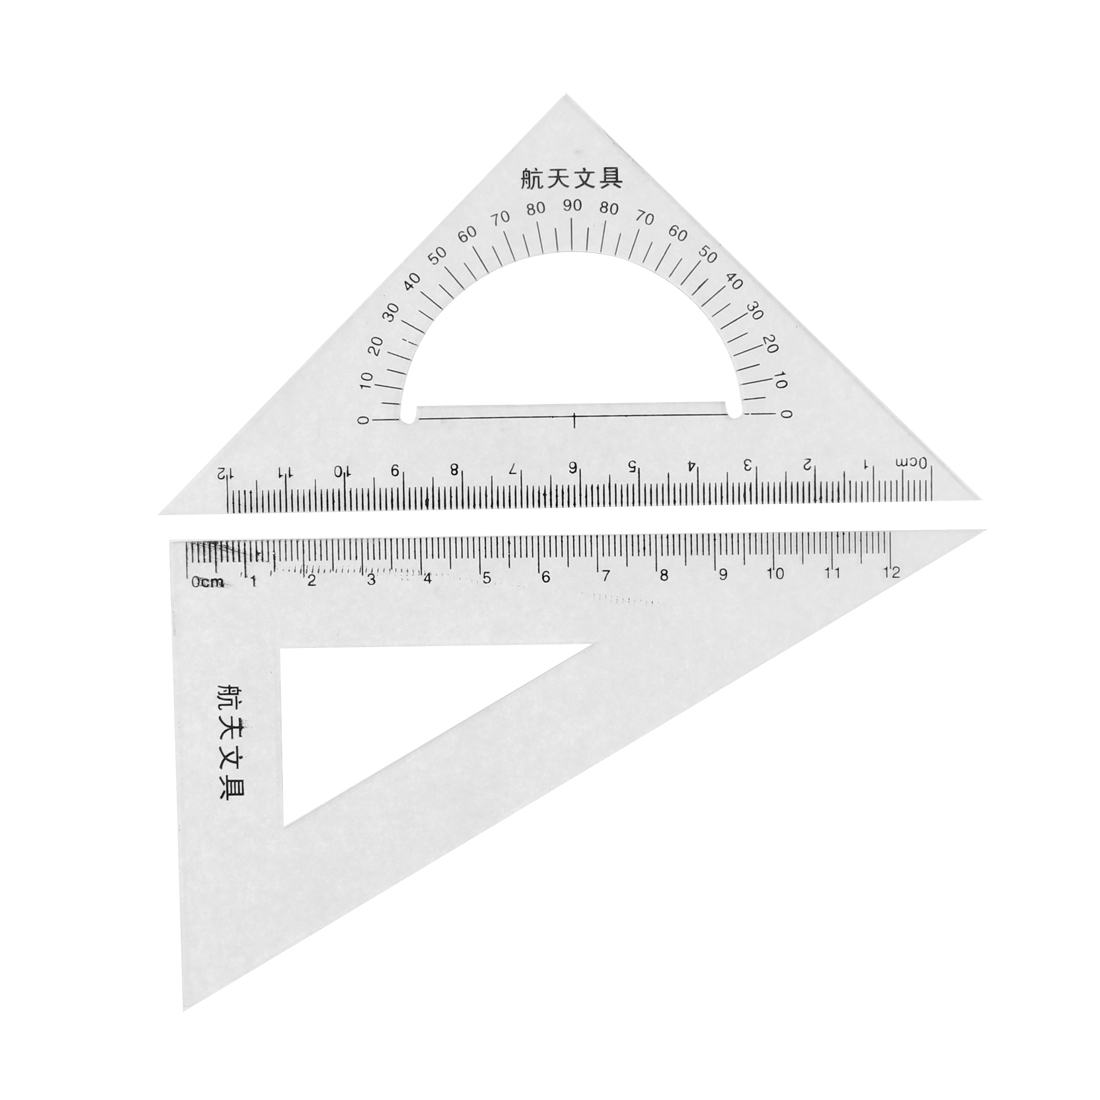 School Students Plastic Drawing Learning Triangle Ruler Protractor Clear 2 Pcs